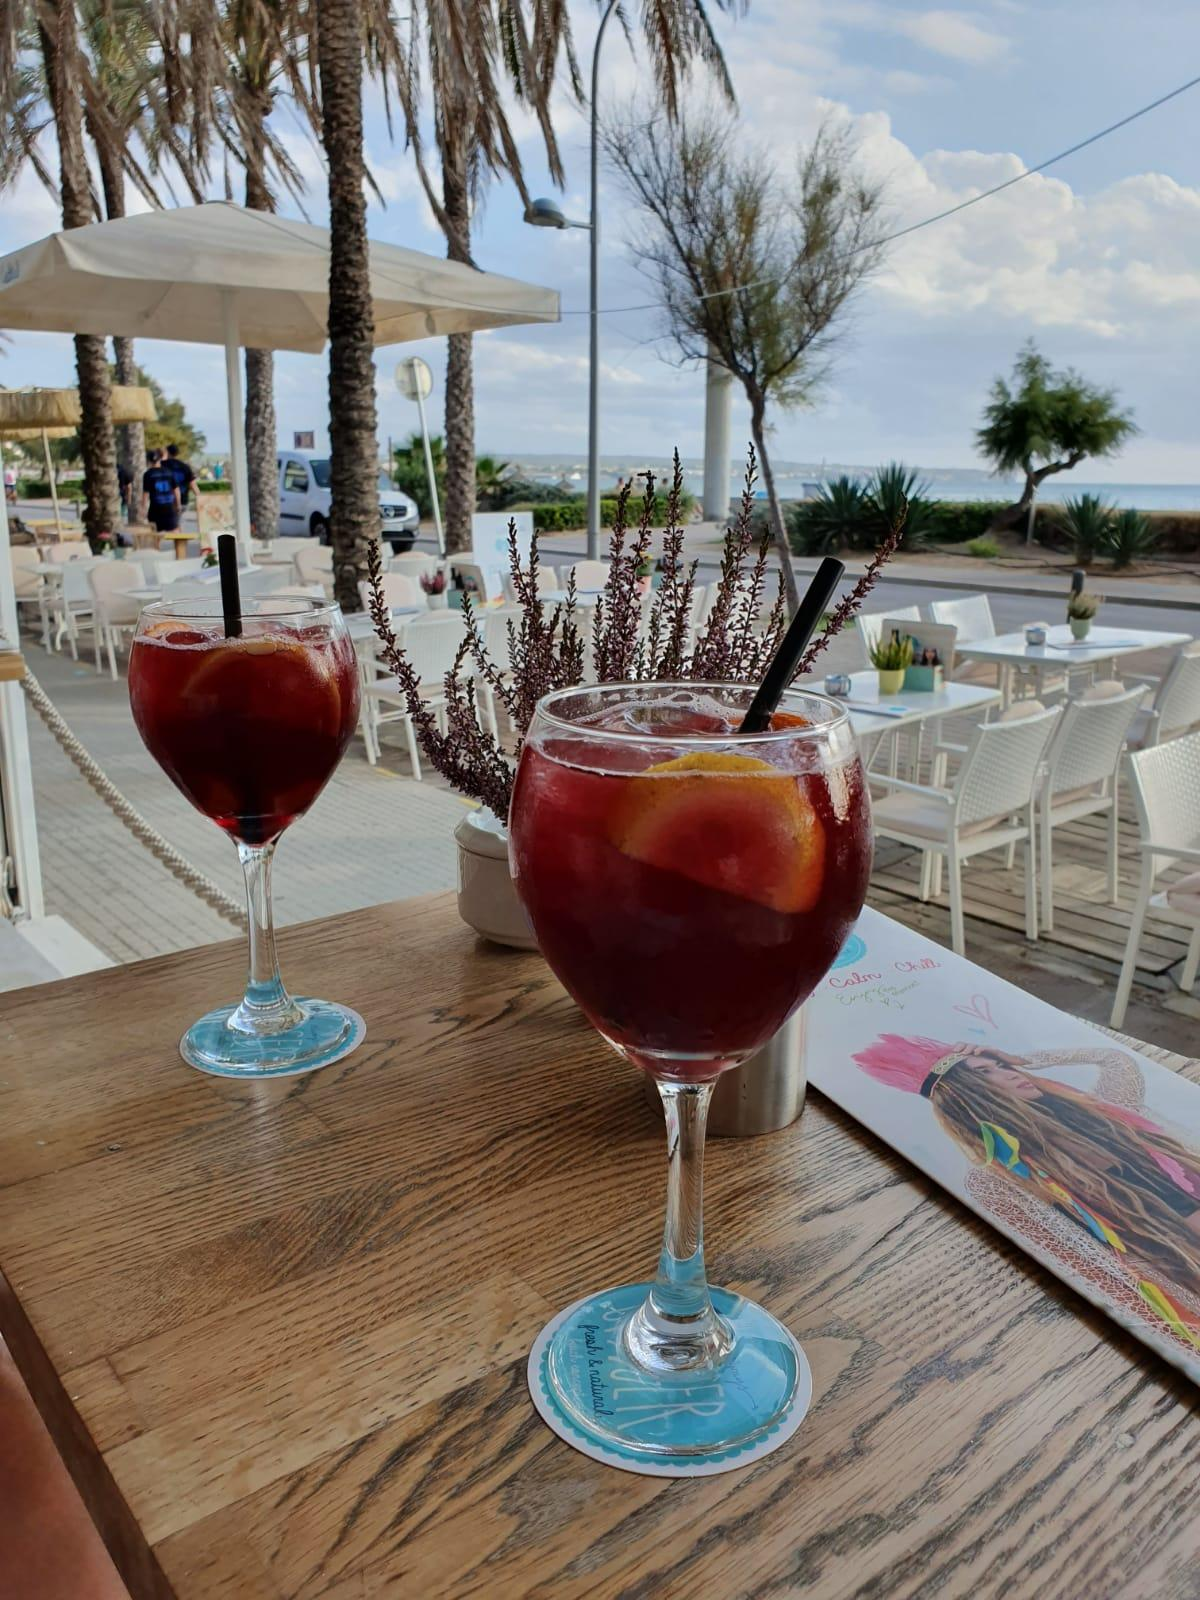 Sangria on the Beach